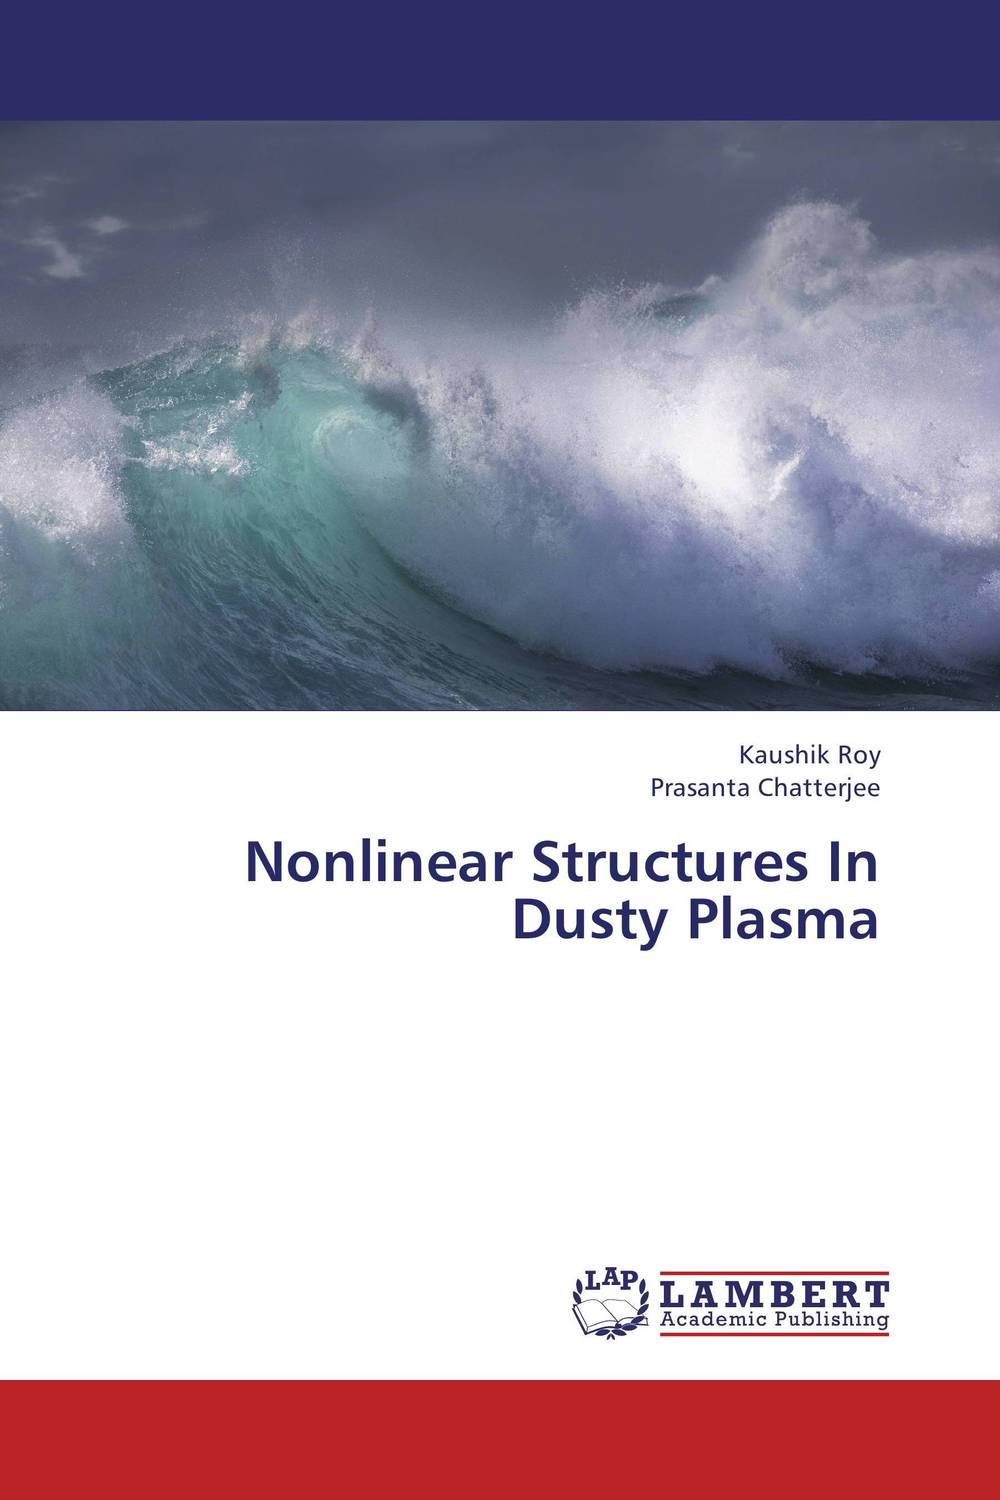 Nonlinear Structures In Dusty Plasma text book of plasma physics